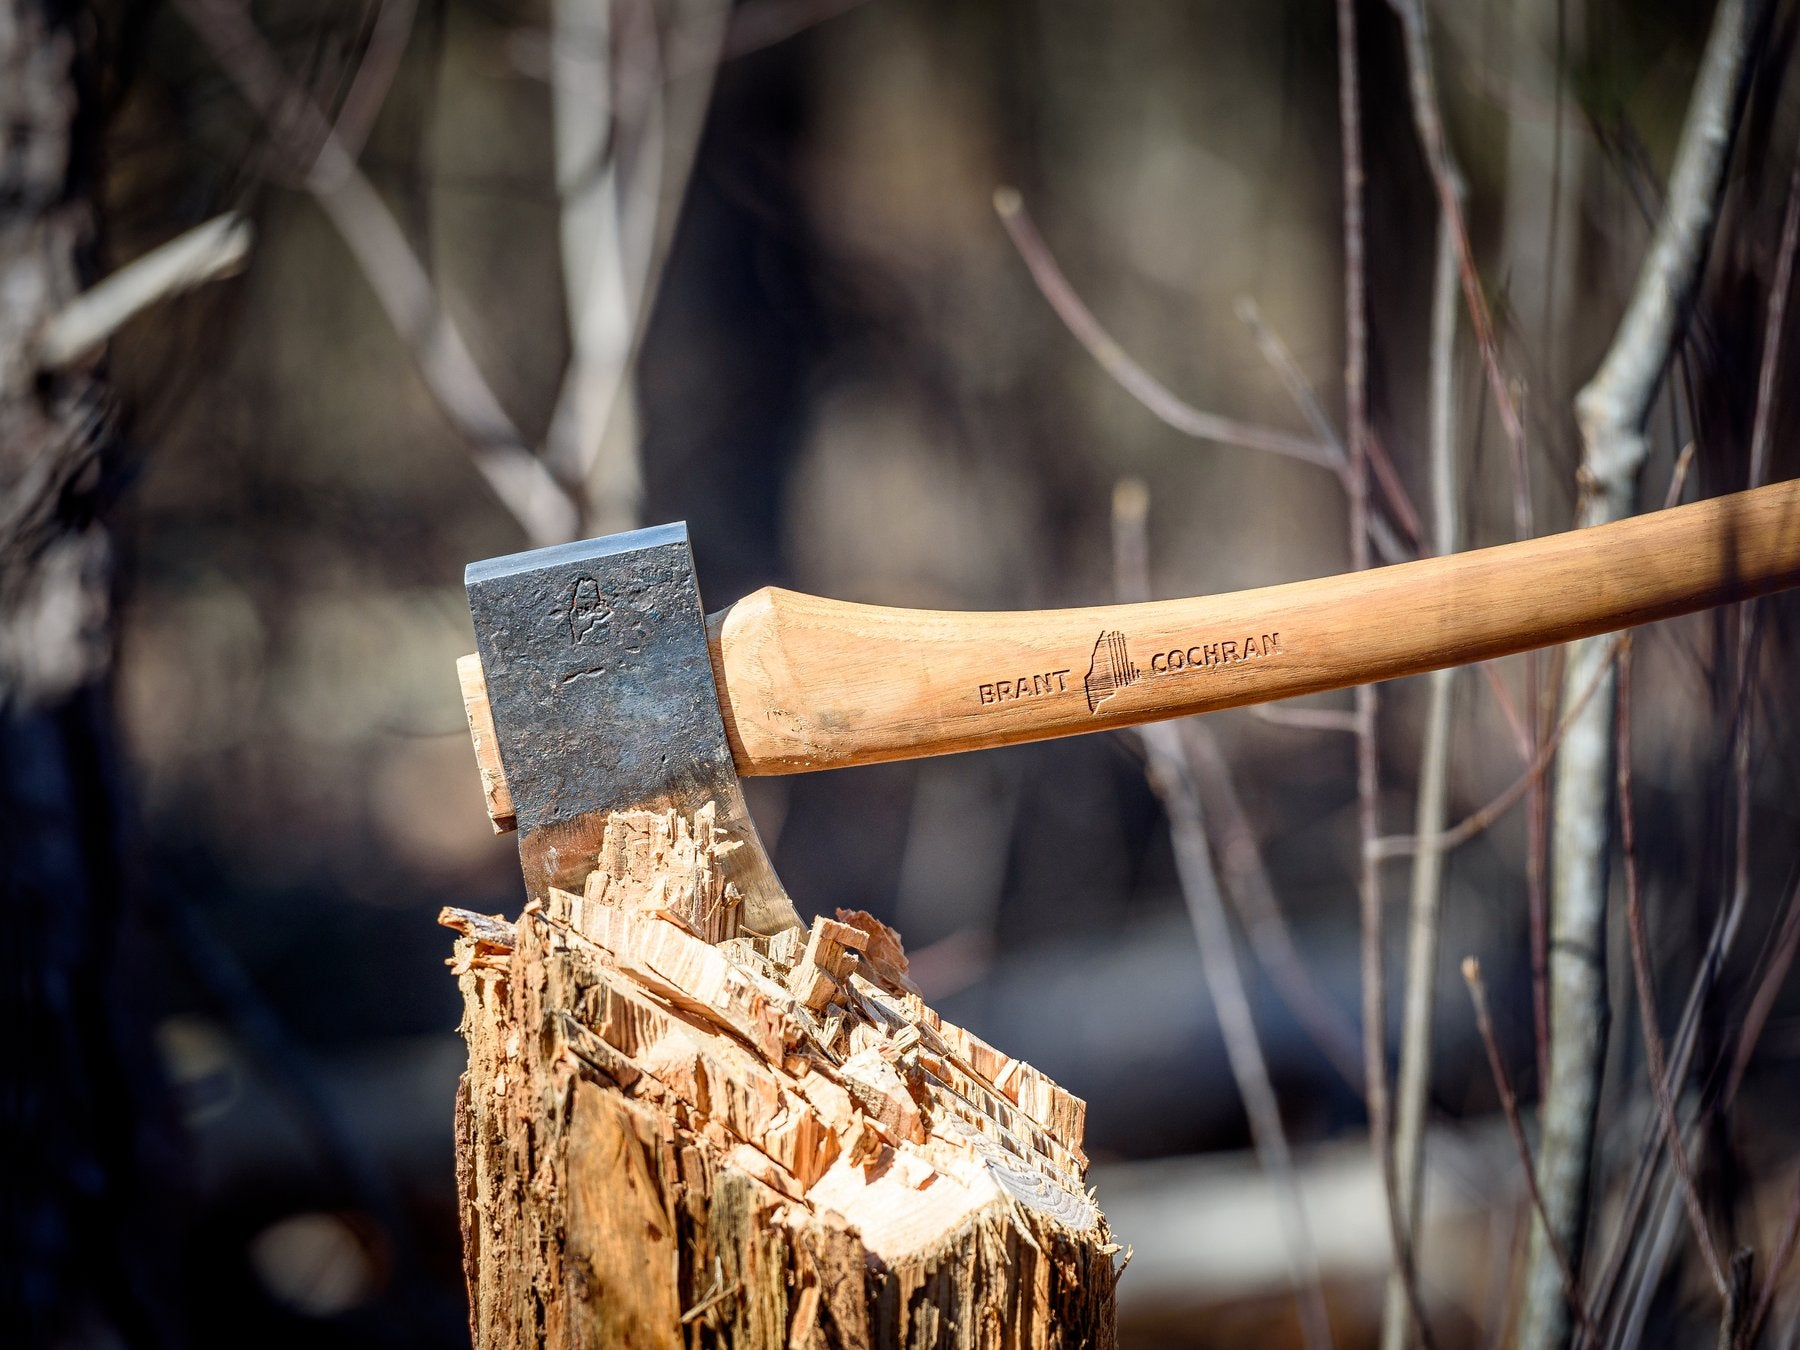 An axe stuck in a tree stump